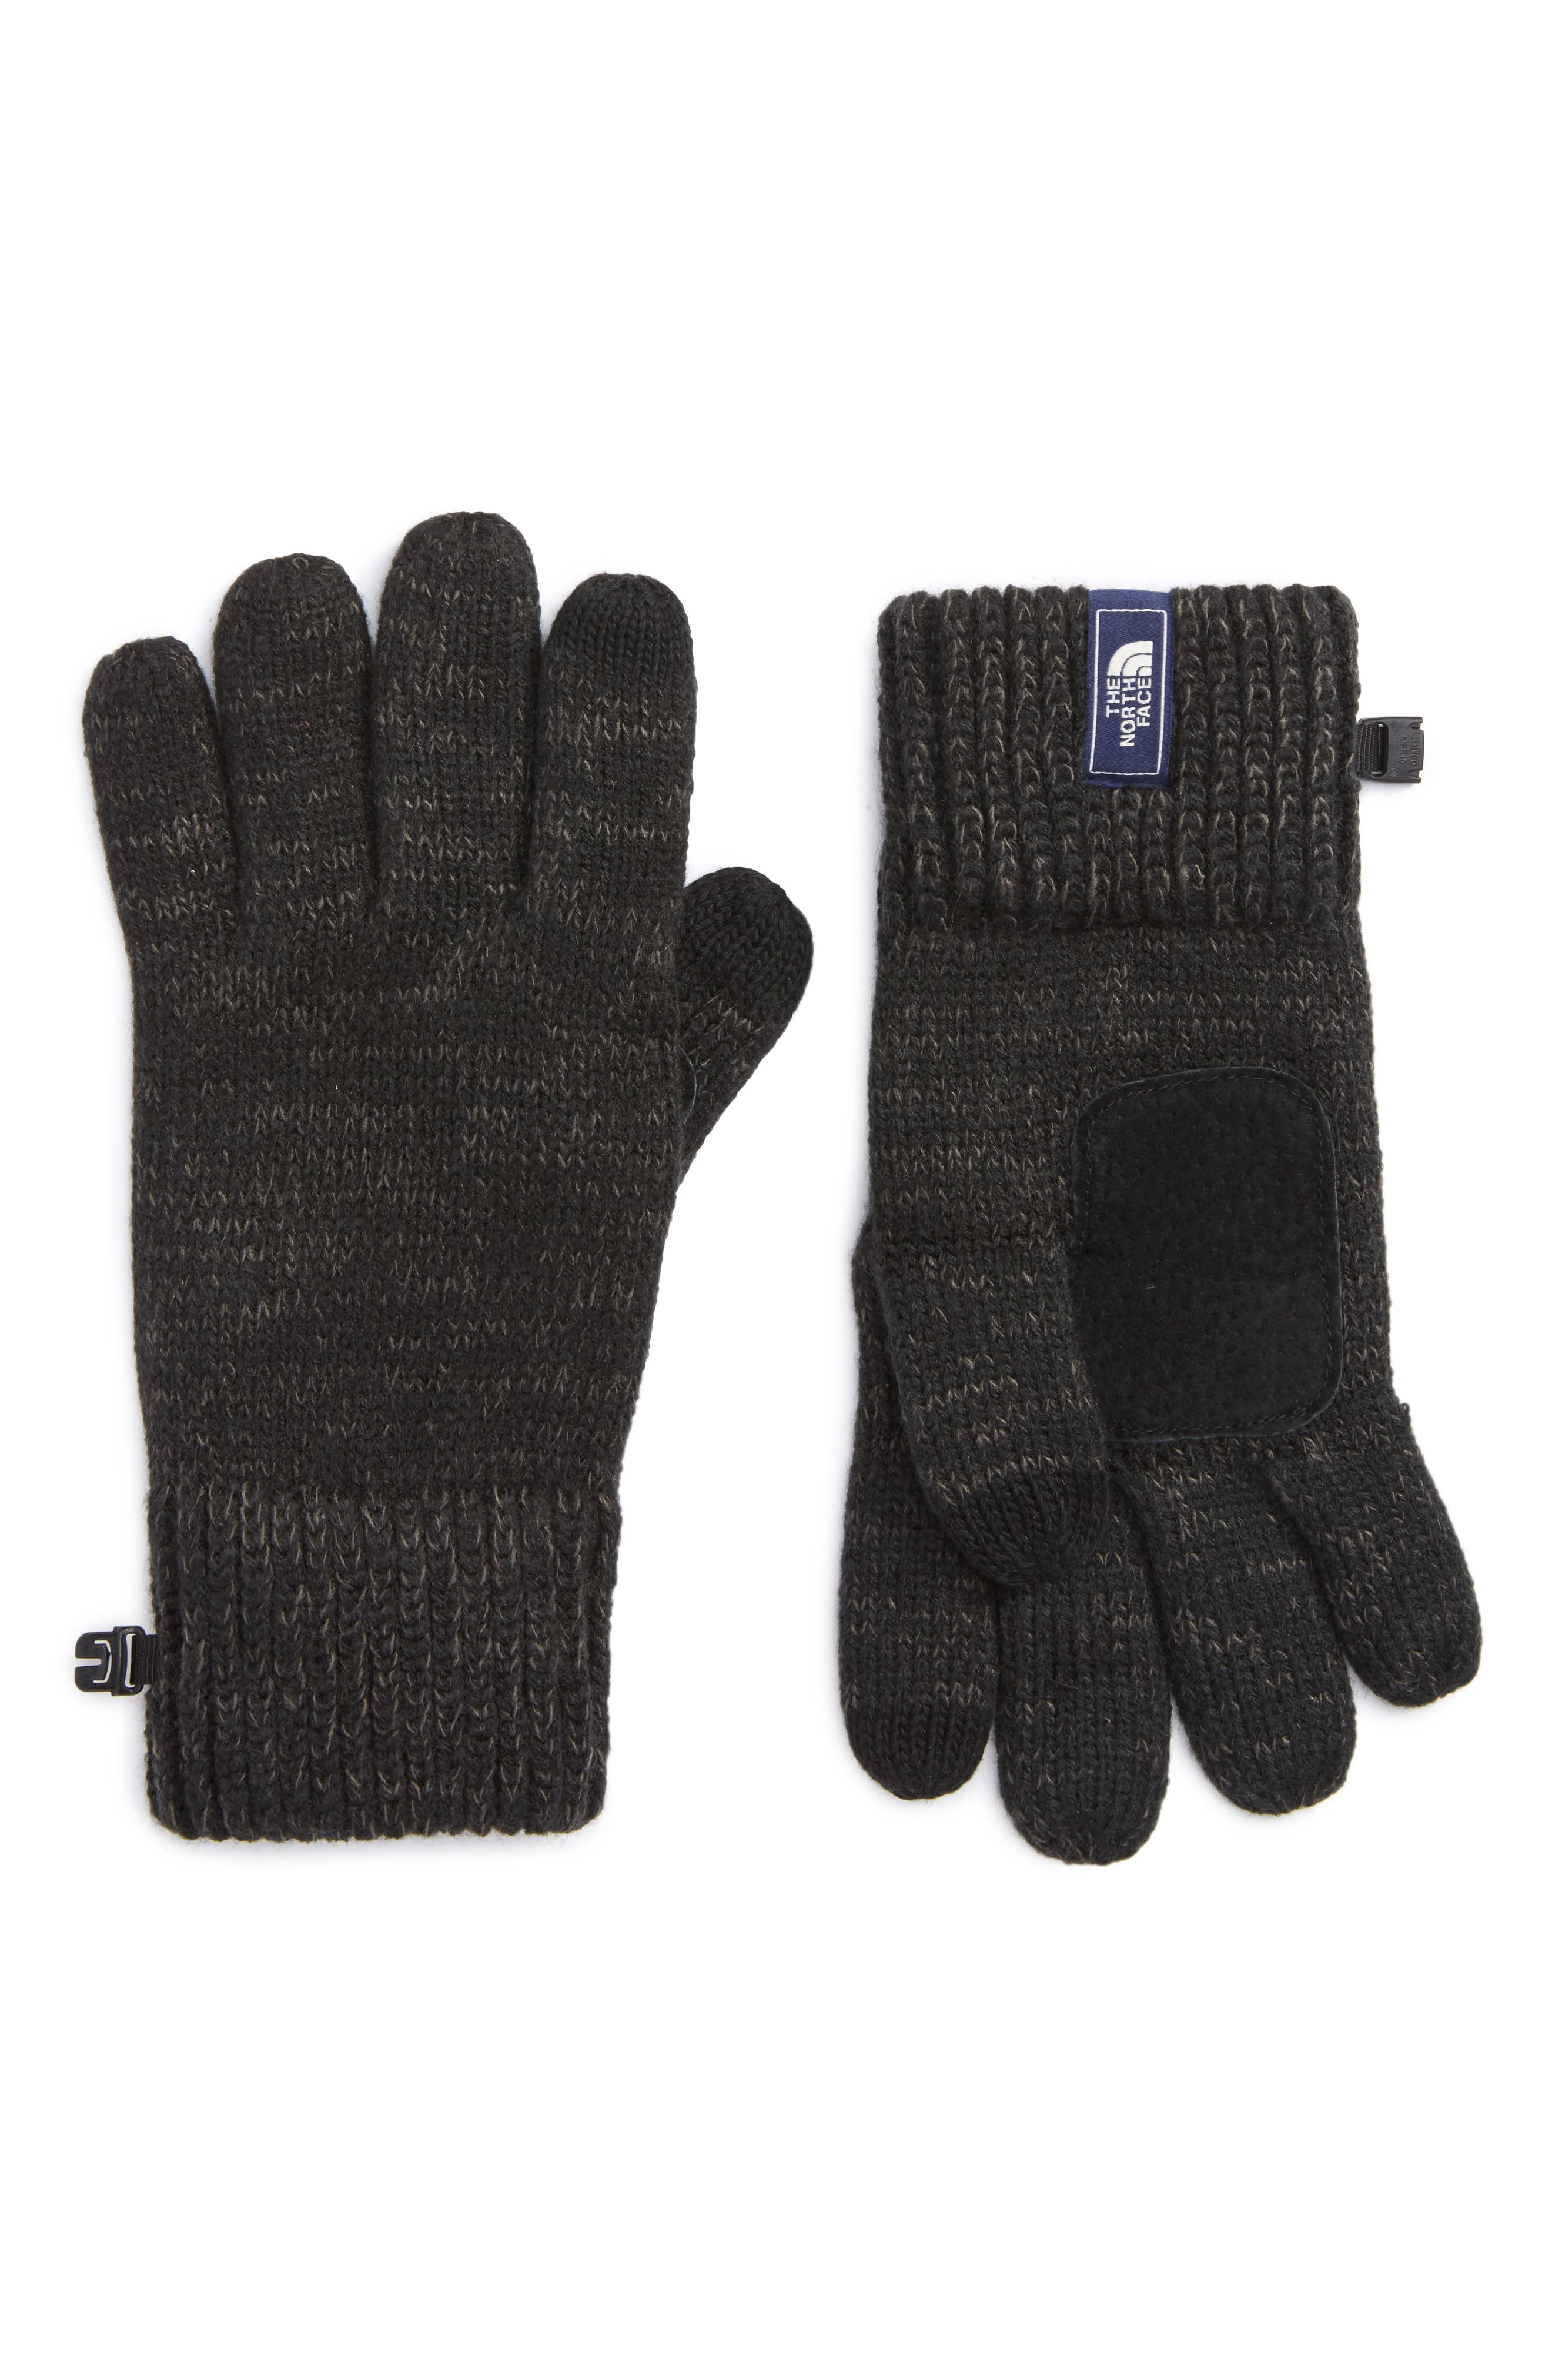 Alternate Image 1 Selected - The North Face Etip Salty Dog Knit Tech Gloves